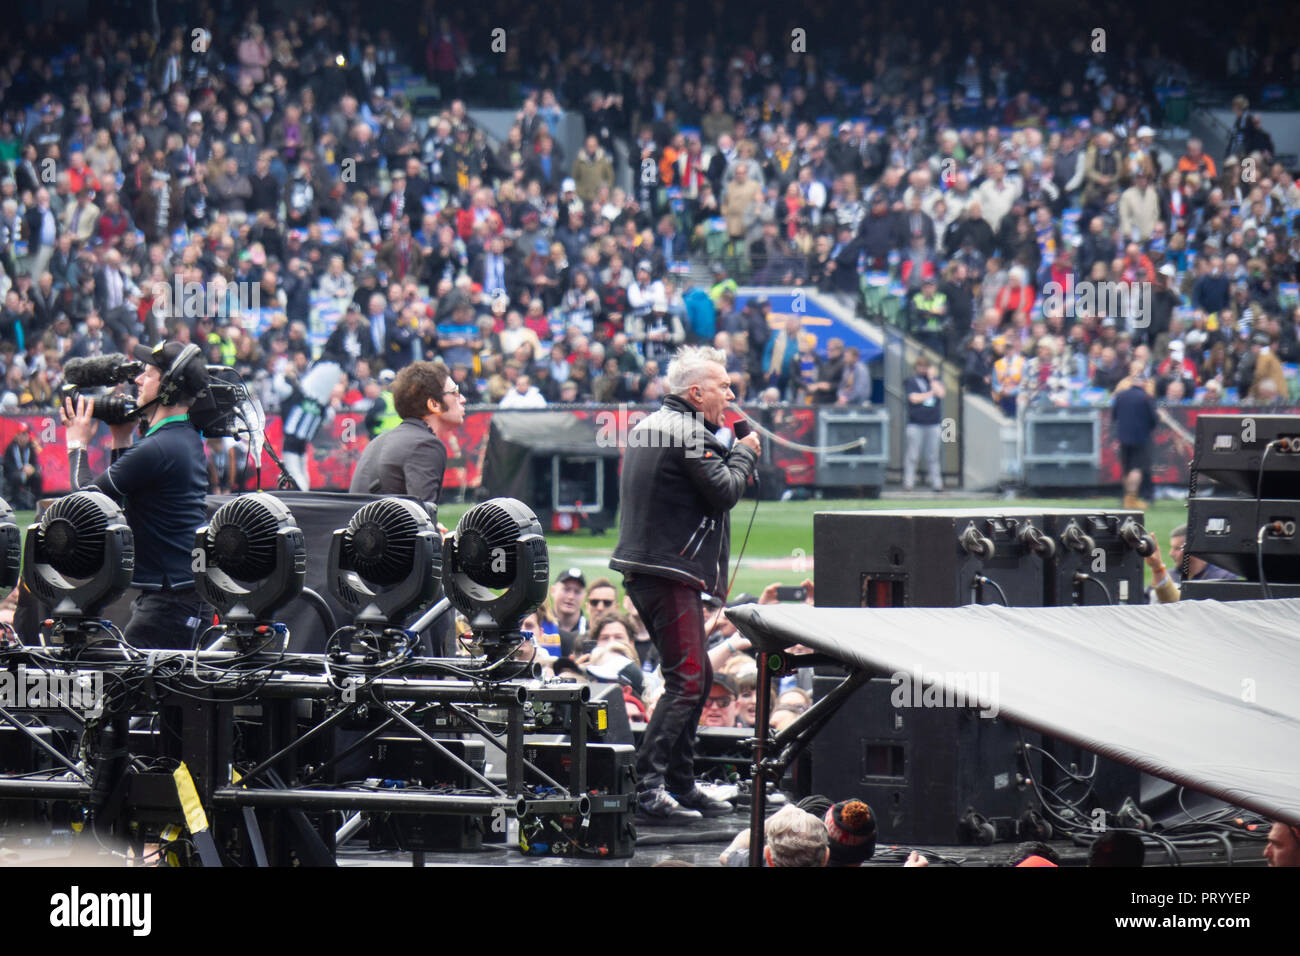 Australian rocker Jimmy Barnes singing in concert at the 2018 AFL Grand Final at the MCG Melbourne Victoria Australia. - Stock Image